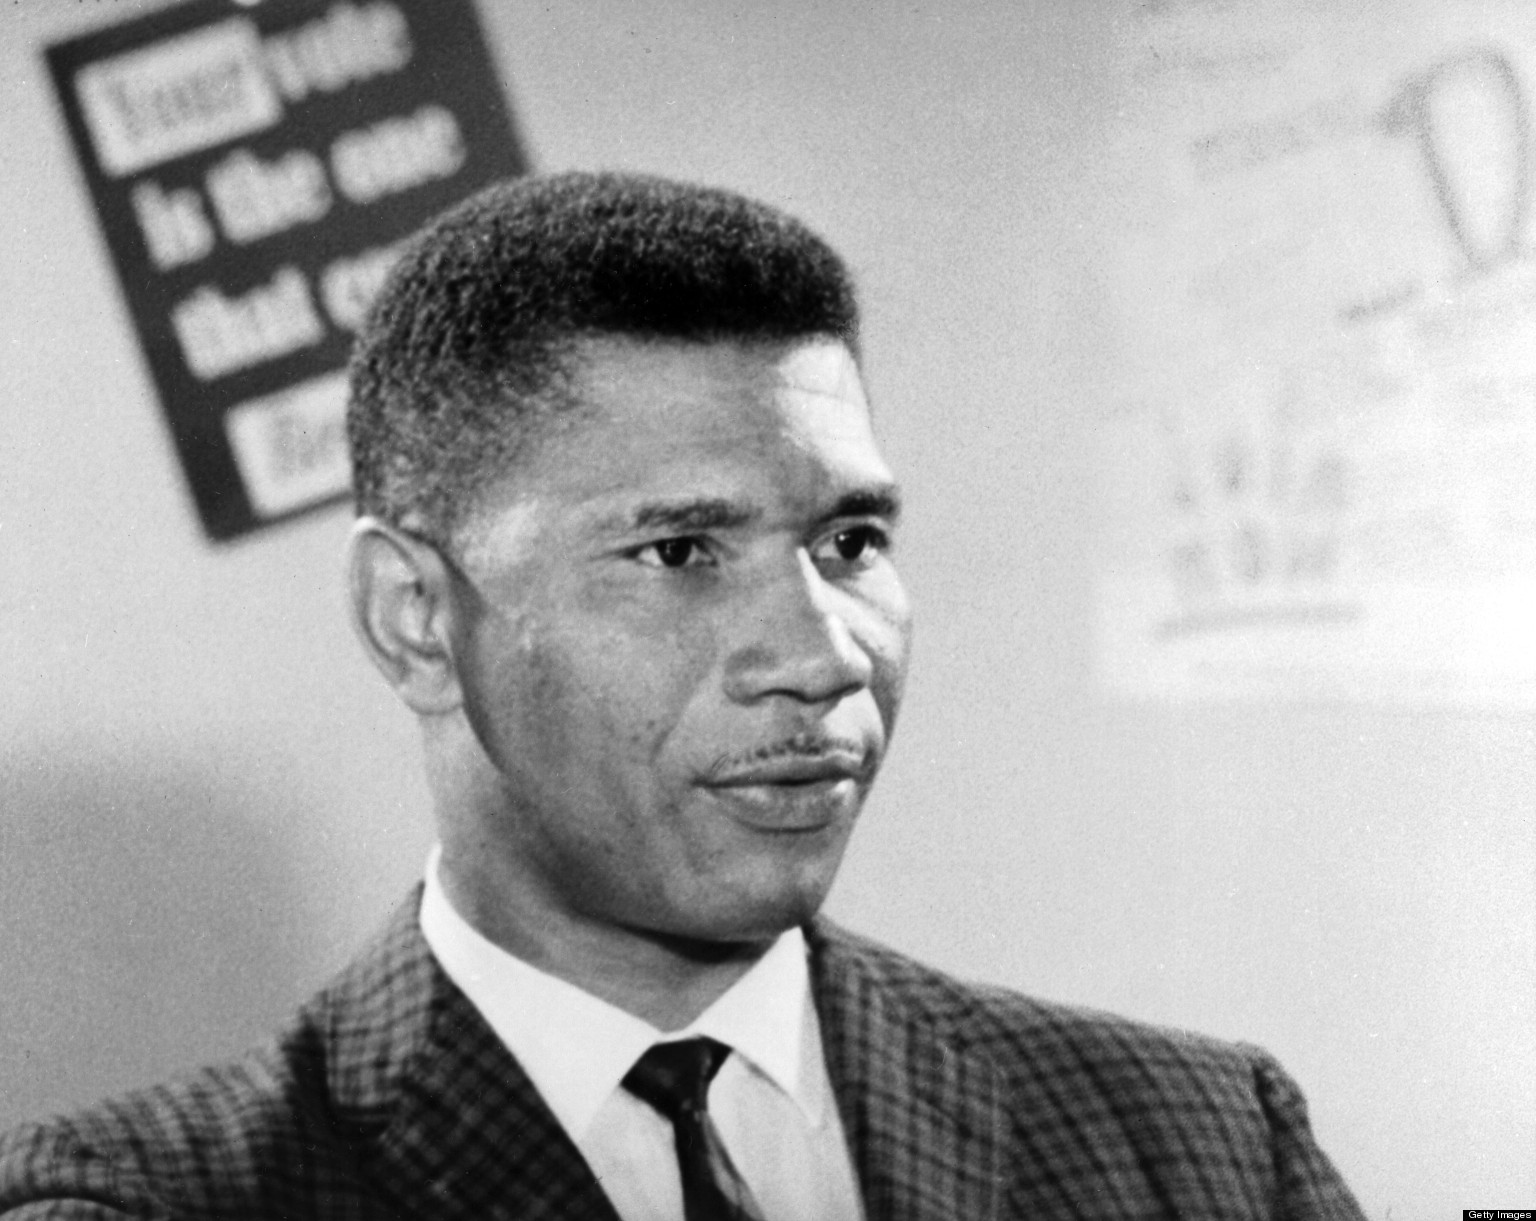 Pin medgar evers body exhumed pictures image search results on